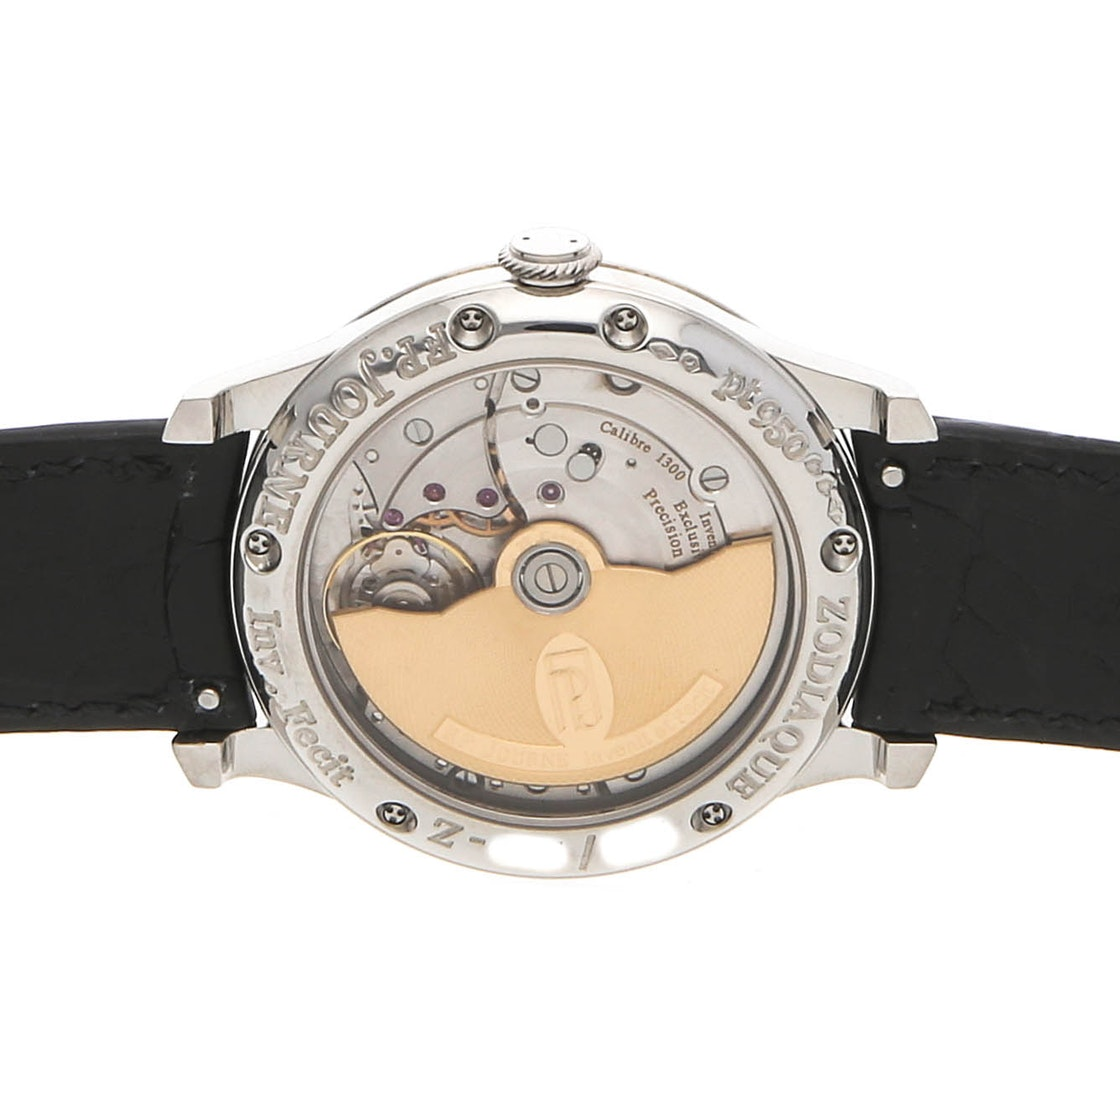 F.P. Journe Octa Zodiaque Limited Series